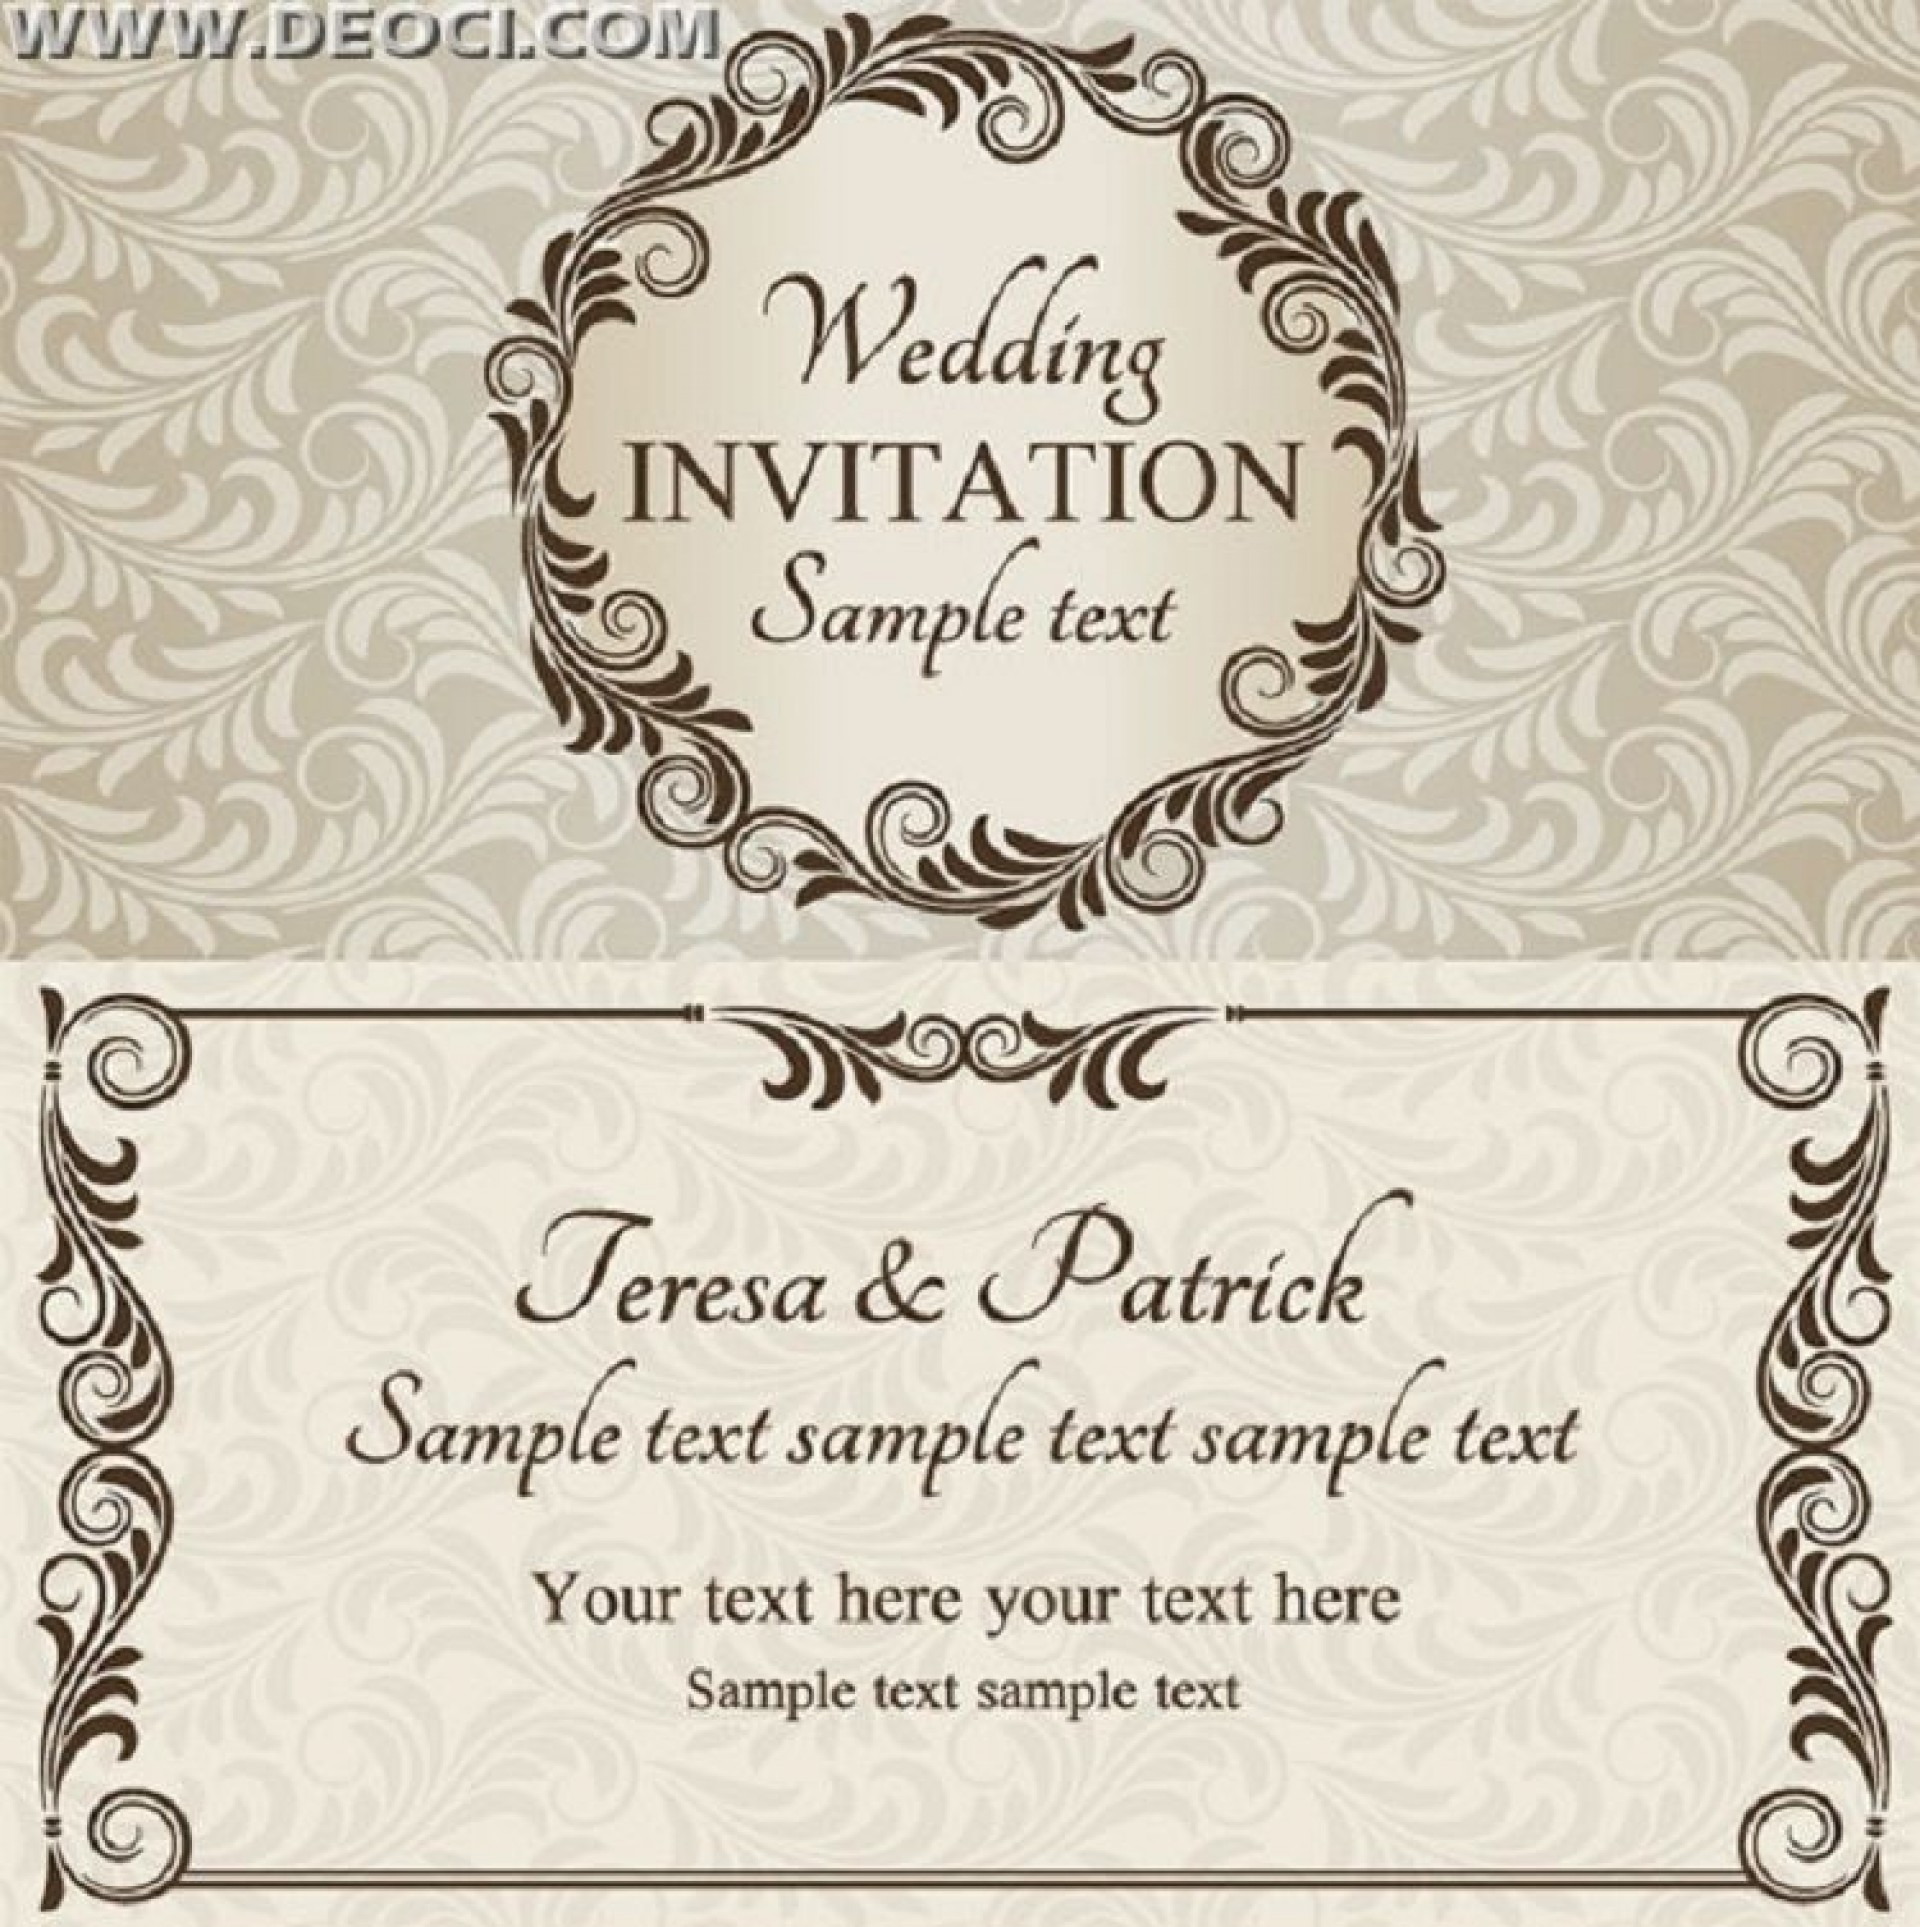 003 Remarkable Free Download Invitation Card Design Example  Birthday Party Blank Wedding Template Software1920